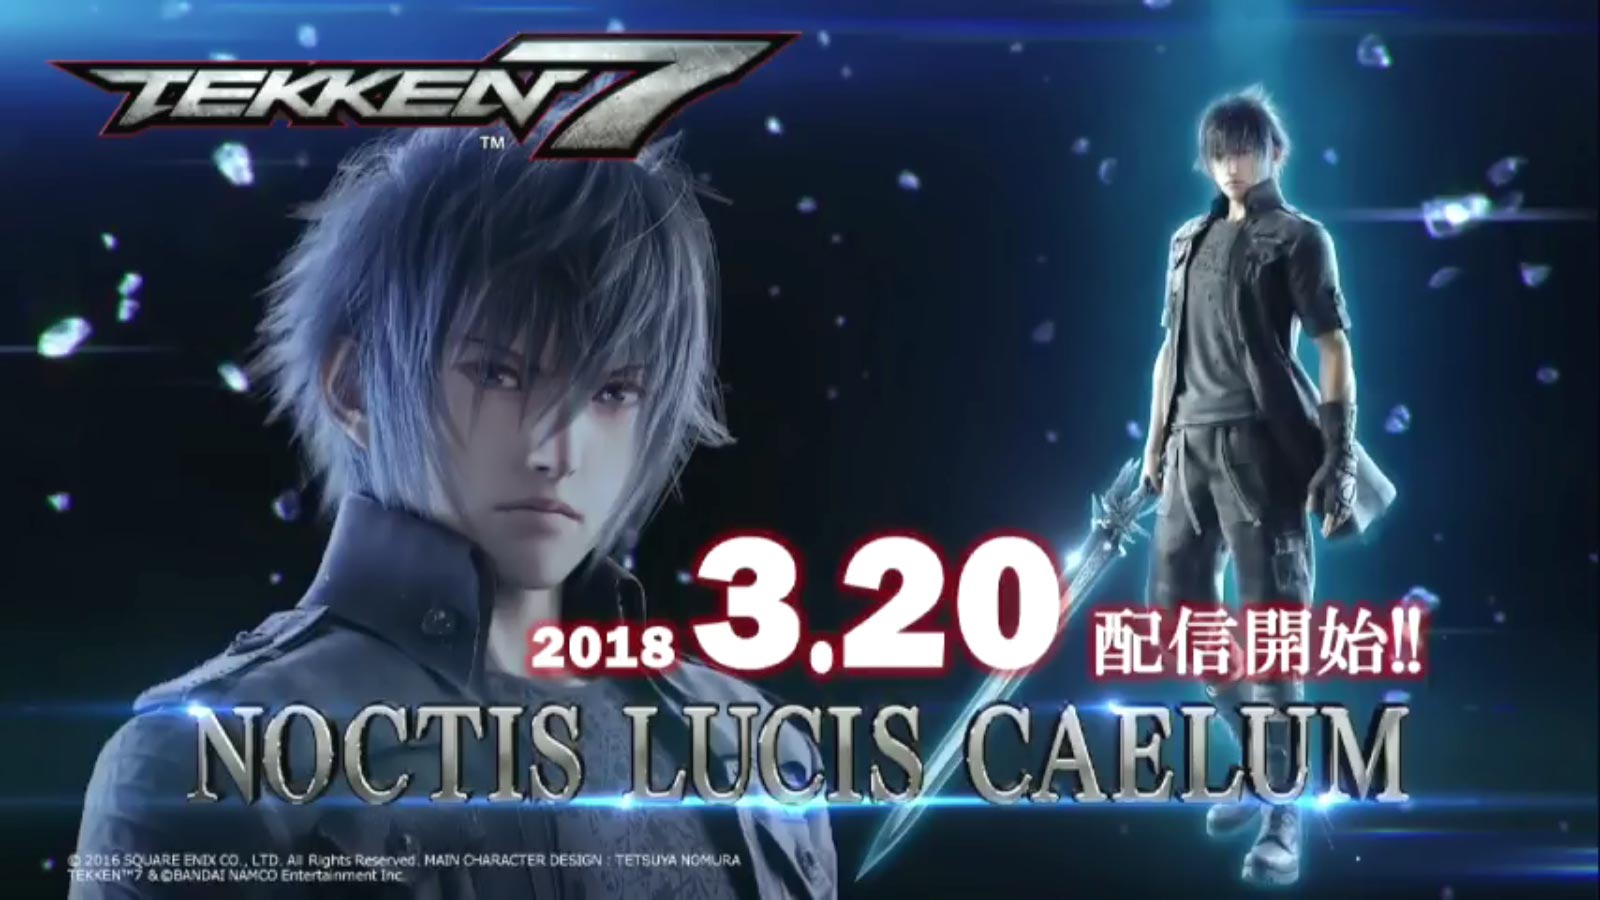 Noctis Lucis Caelum Tekken 7 release date 1 out of 1 image gallery